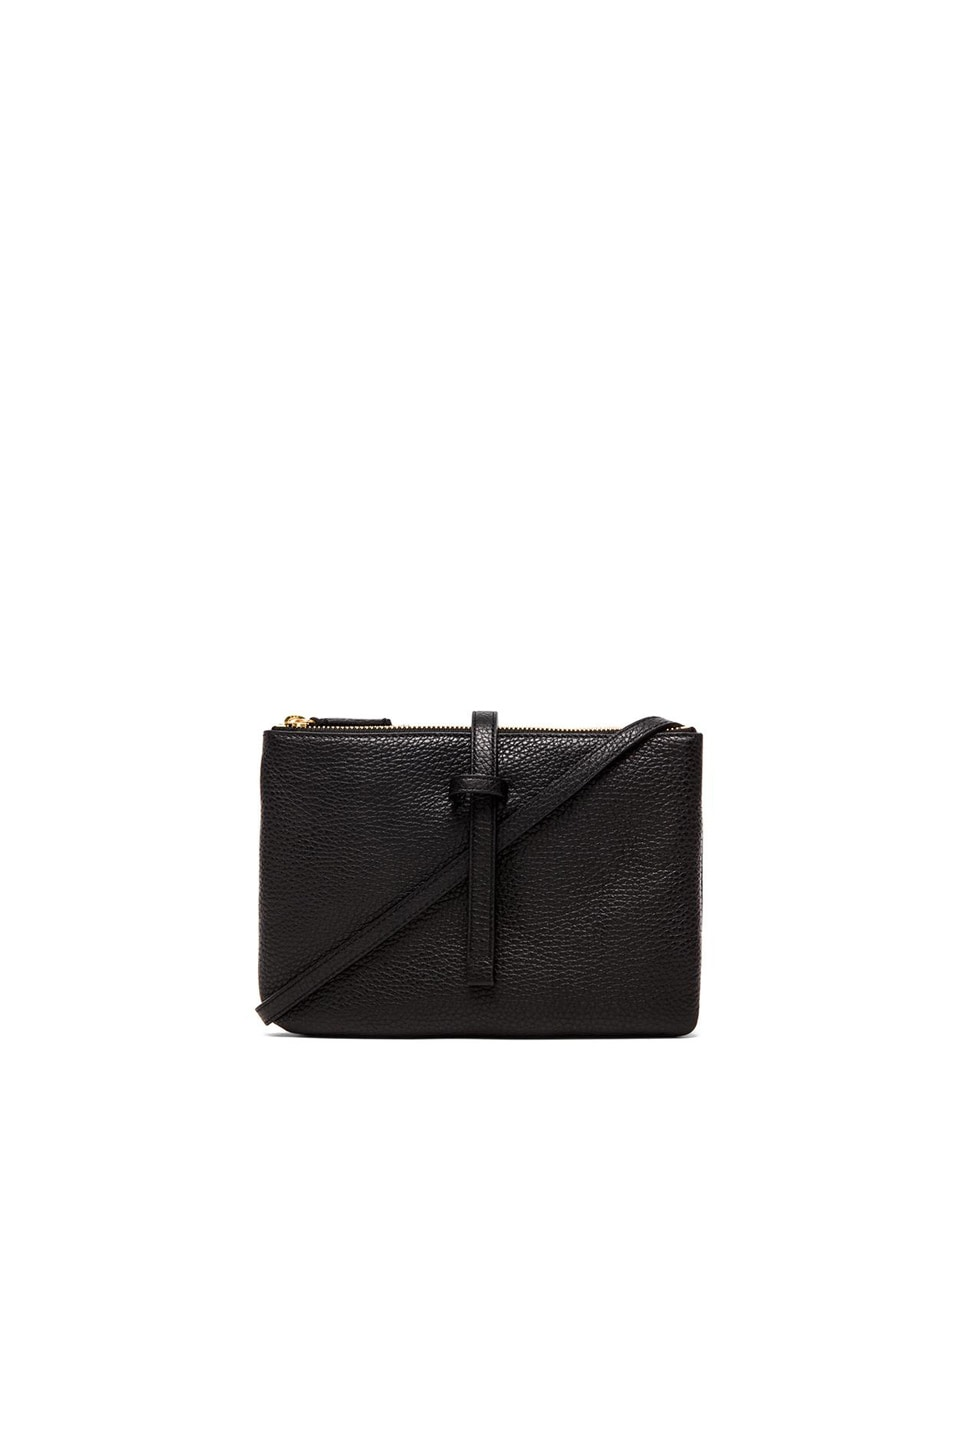 Annabel Ingall Jojo Crossbody in Black